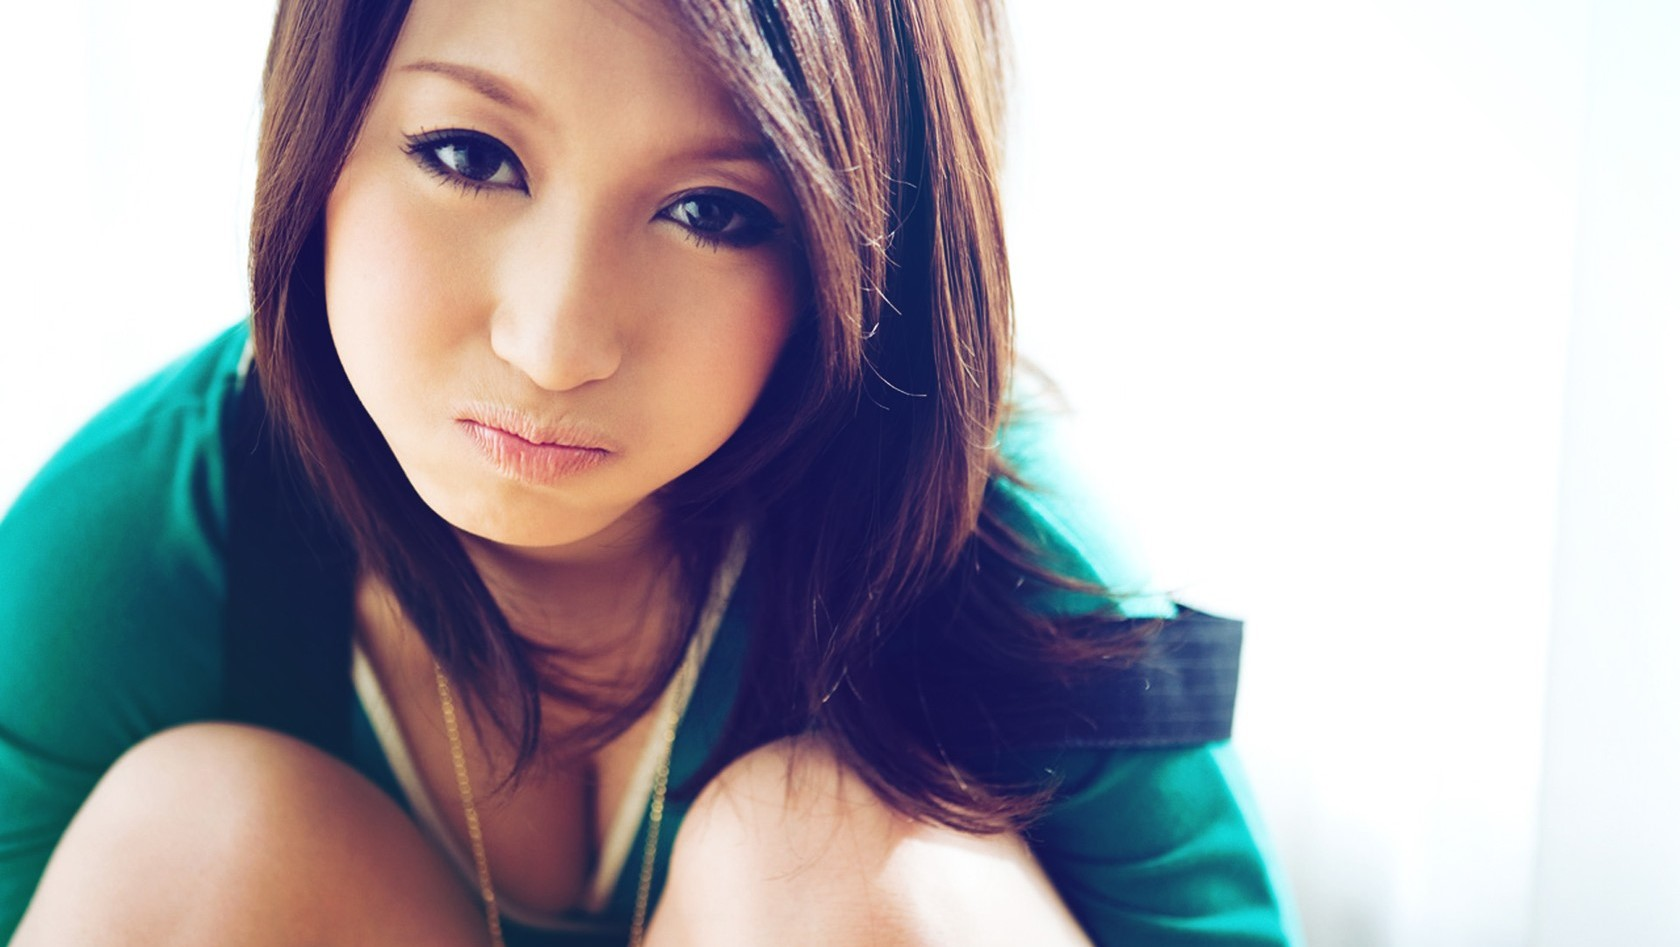 Asian Girls HD Wallpapers and Backgrounds